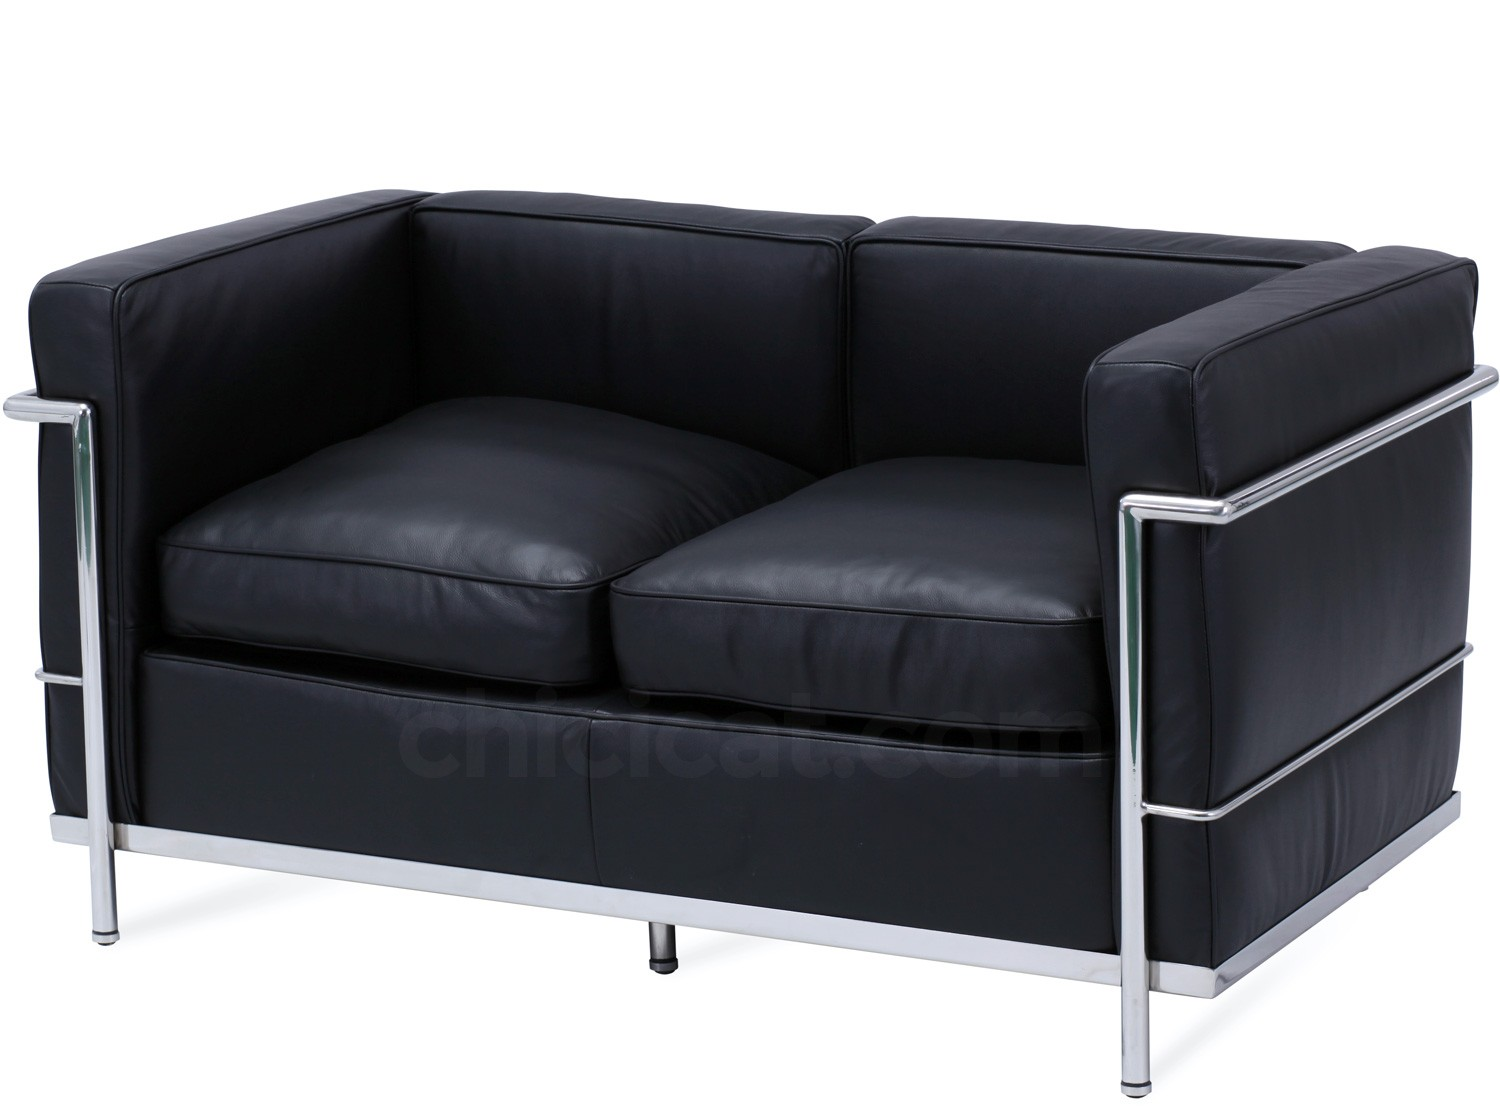 le corbusier sofa replica lee industries prices lc2 2 seater platinum chicicat petit confort black